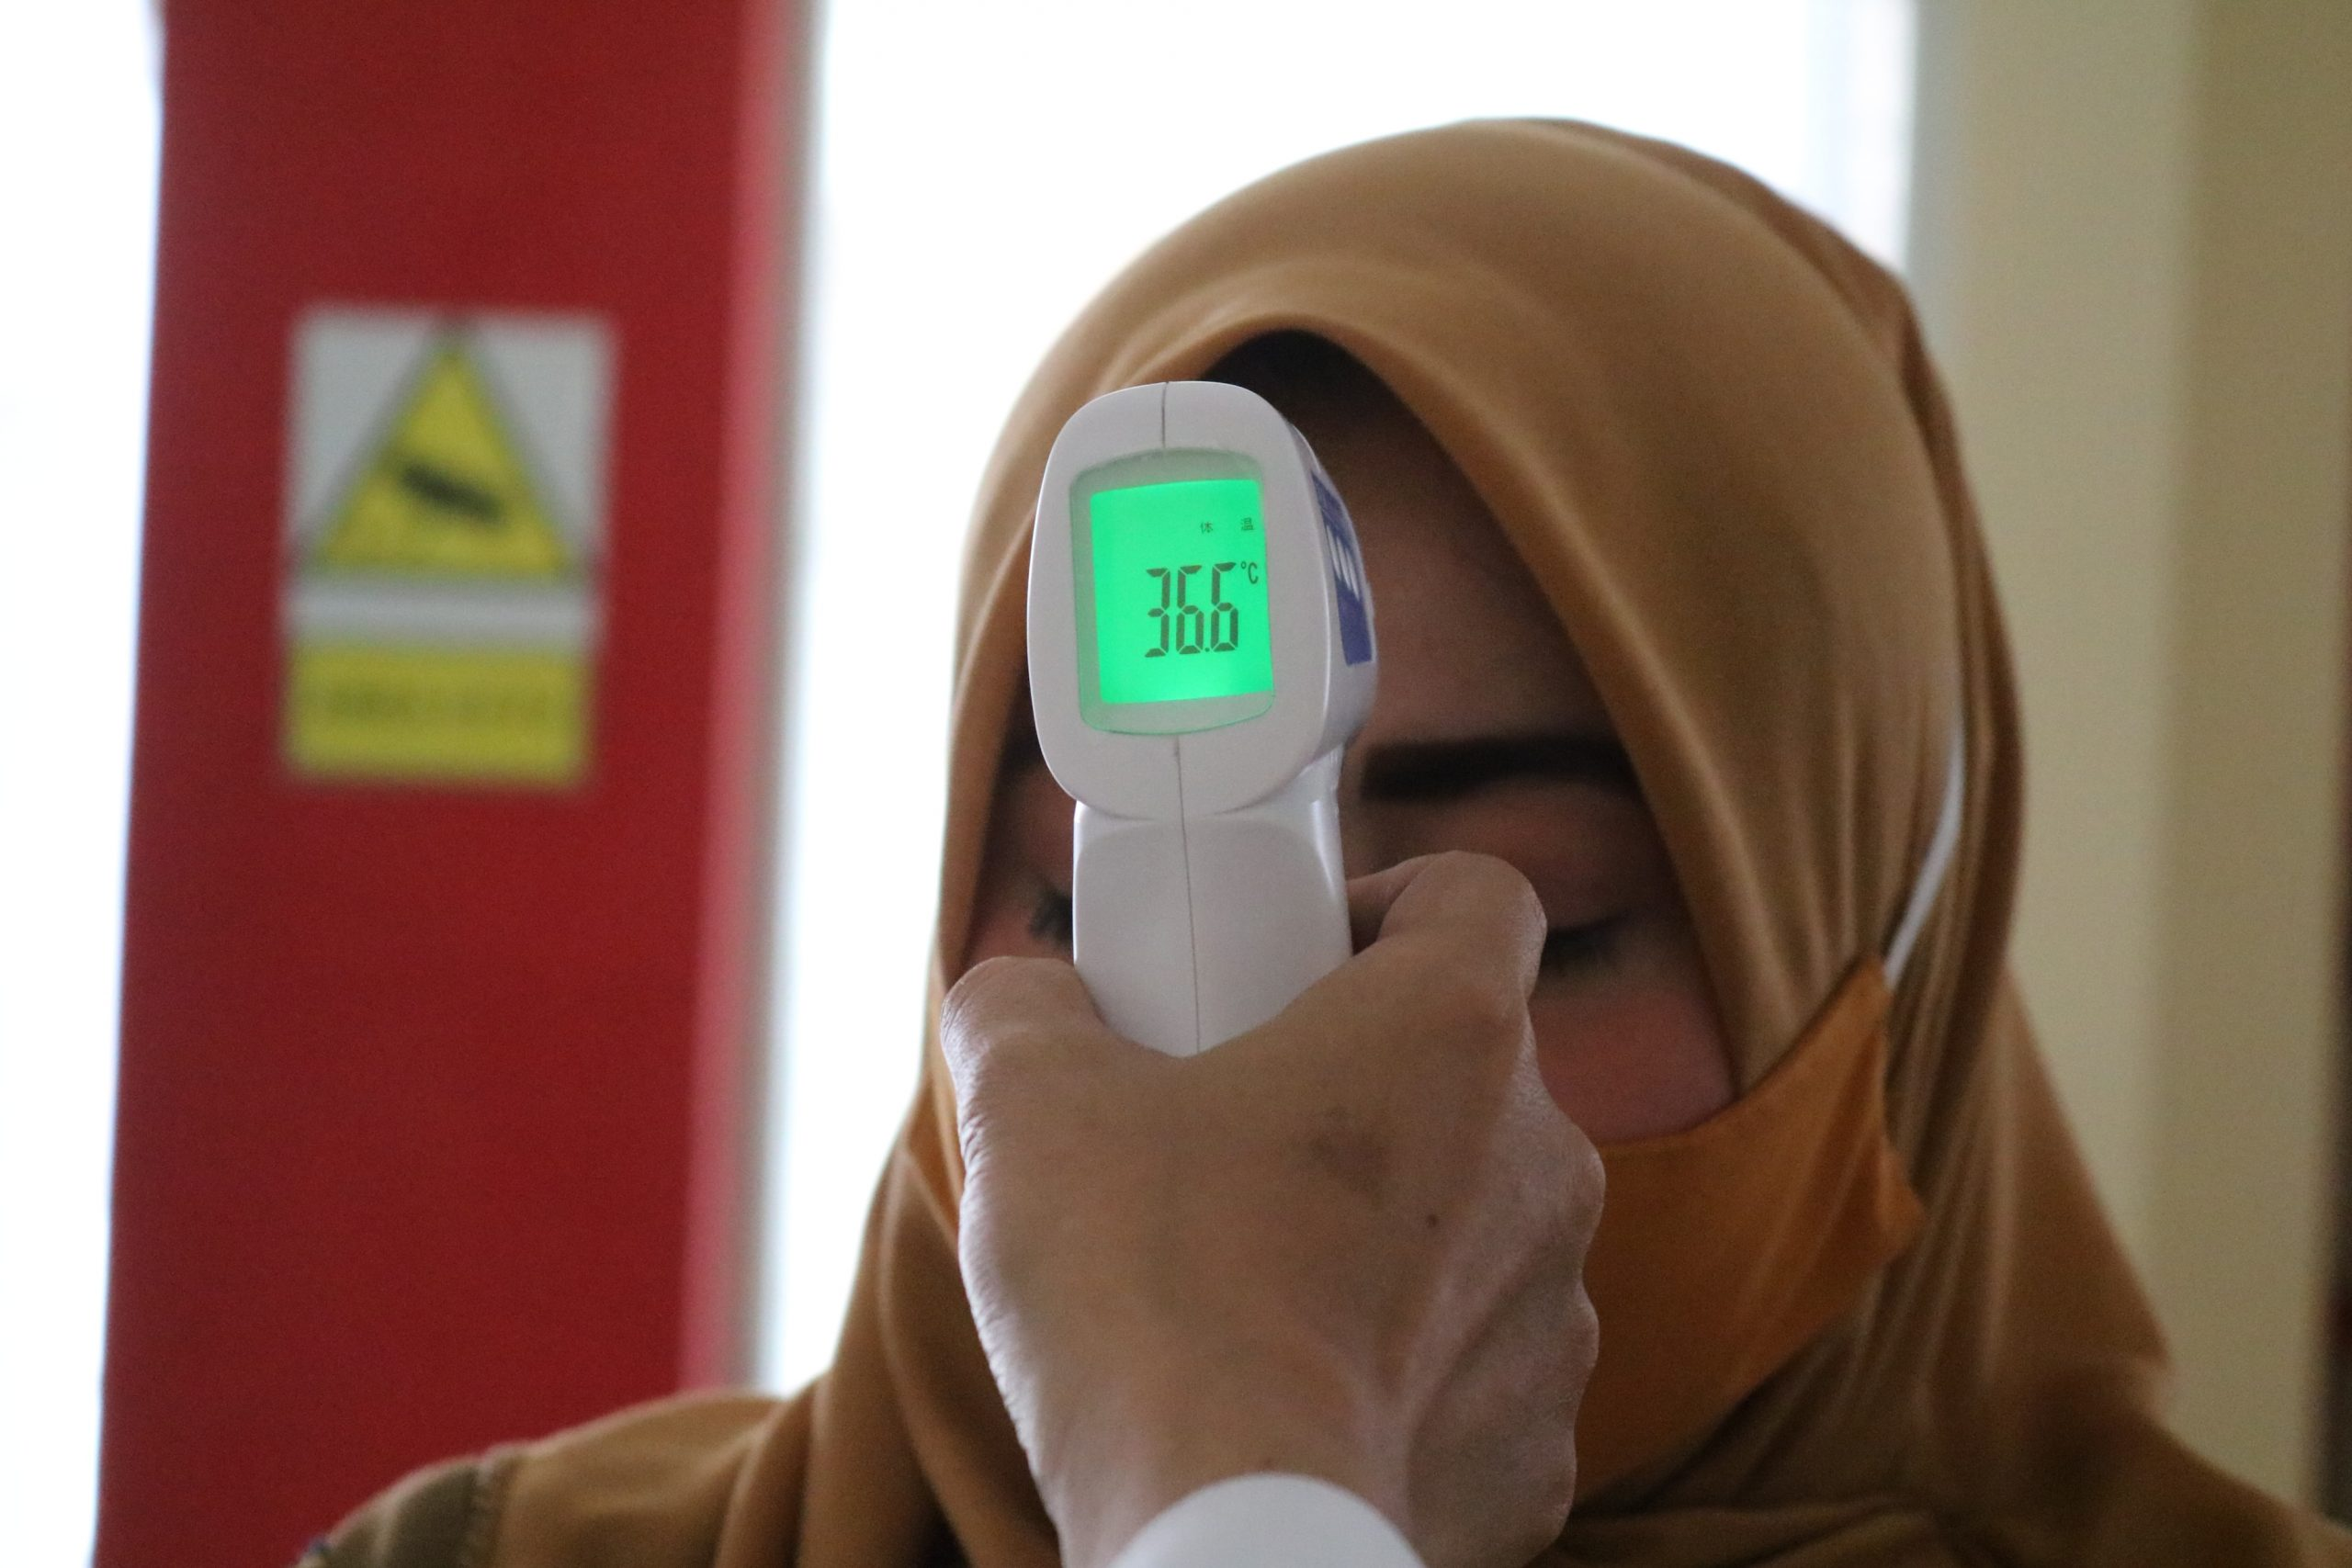 A woman wearing a brown hijab has her temperature take